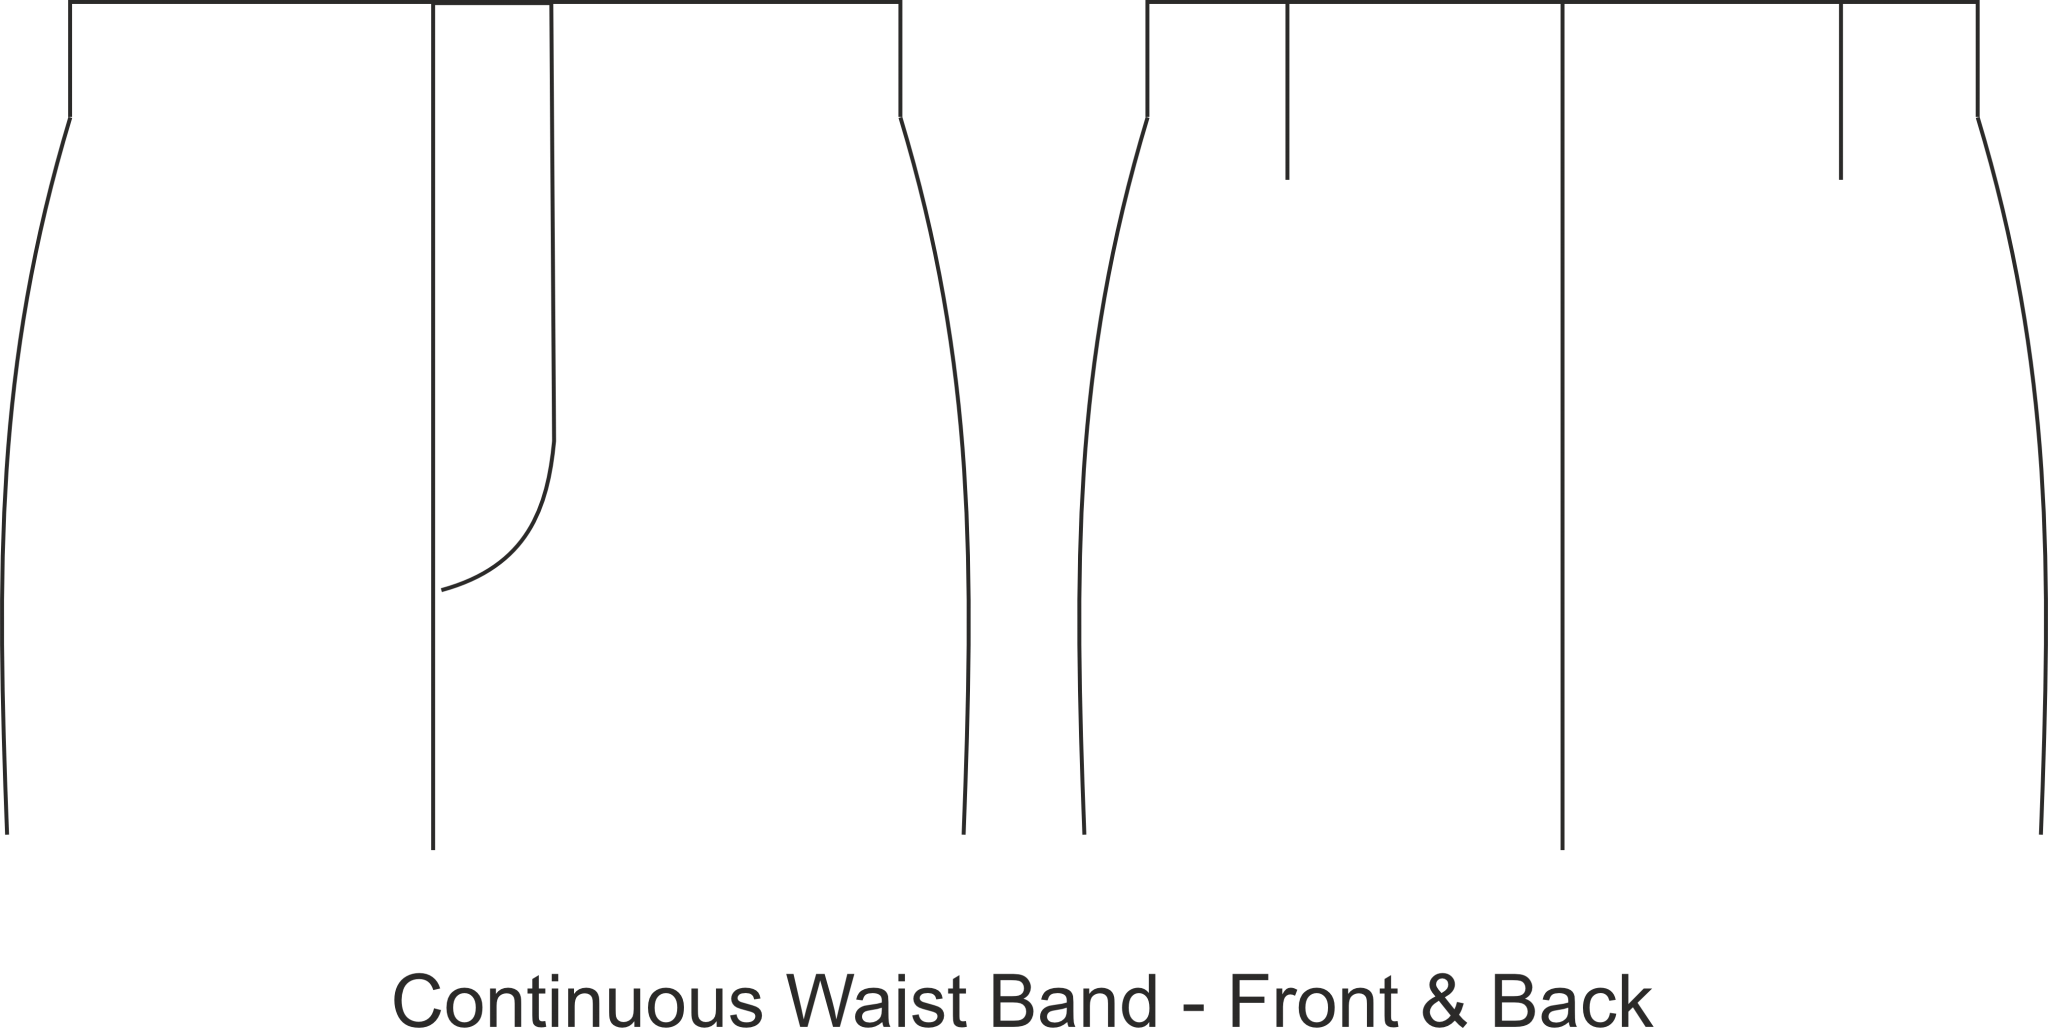 waistband-continuous-front-back